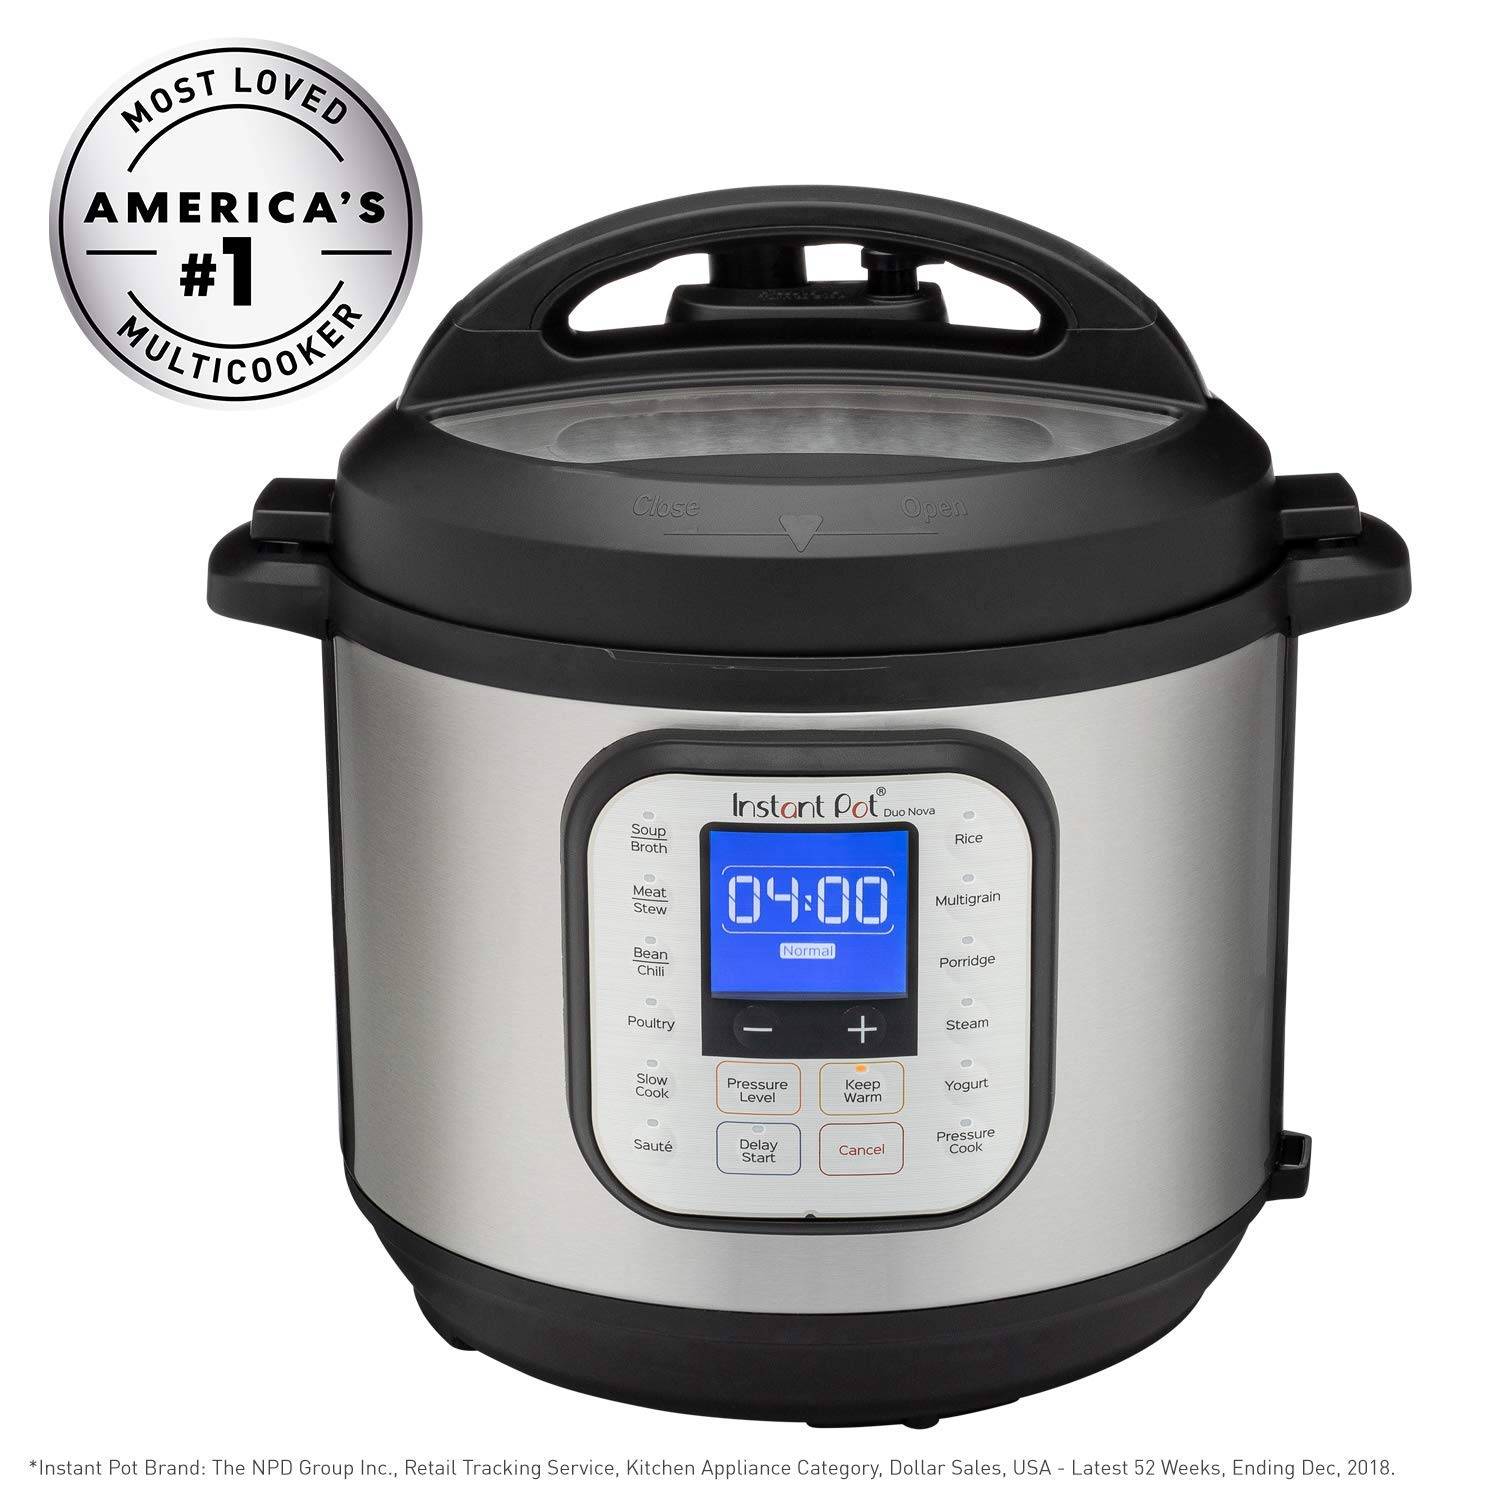 Instant Pot DUO NOVA 6 Qt 7-in-1 Multi-Use Programmable Pressure Cooker, Slow Cooker, Rice Cooker, Steamer, Sauté, Yogurt Maker and Warmer (Renewed)